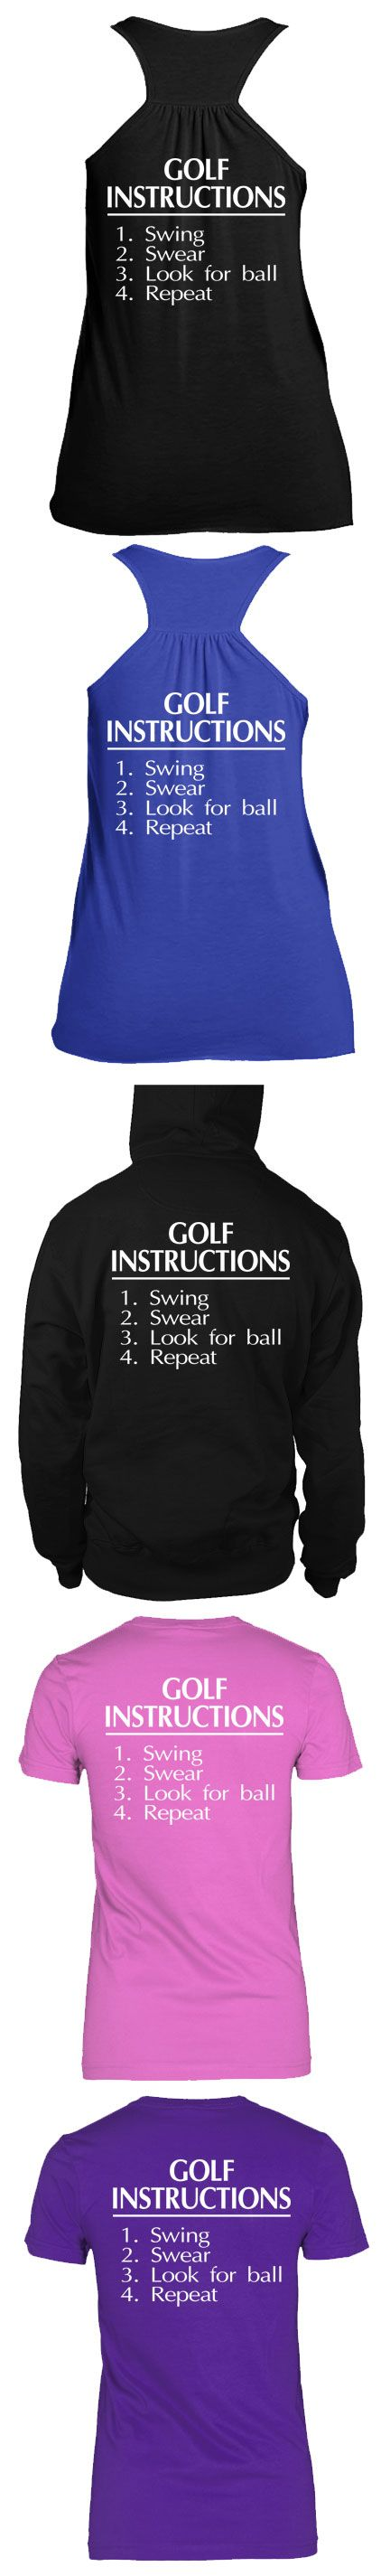 Love Golf? Then Click The Image To Buy It Now or Tag Someone You Want To Buy This For.